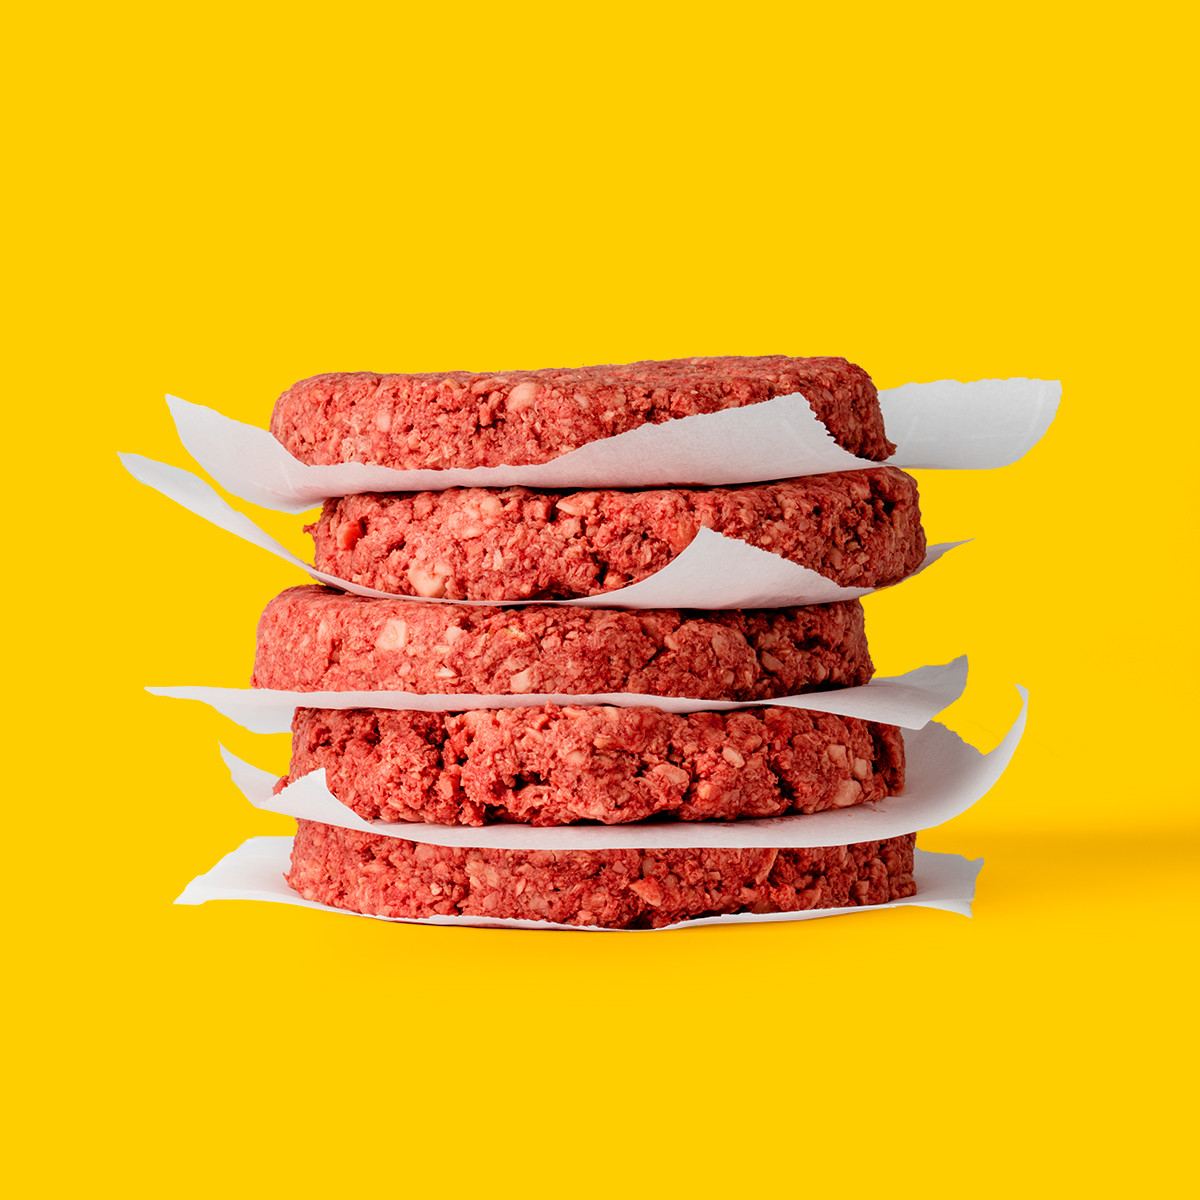 Impossible Burger patties